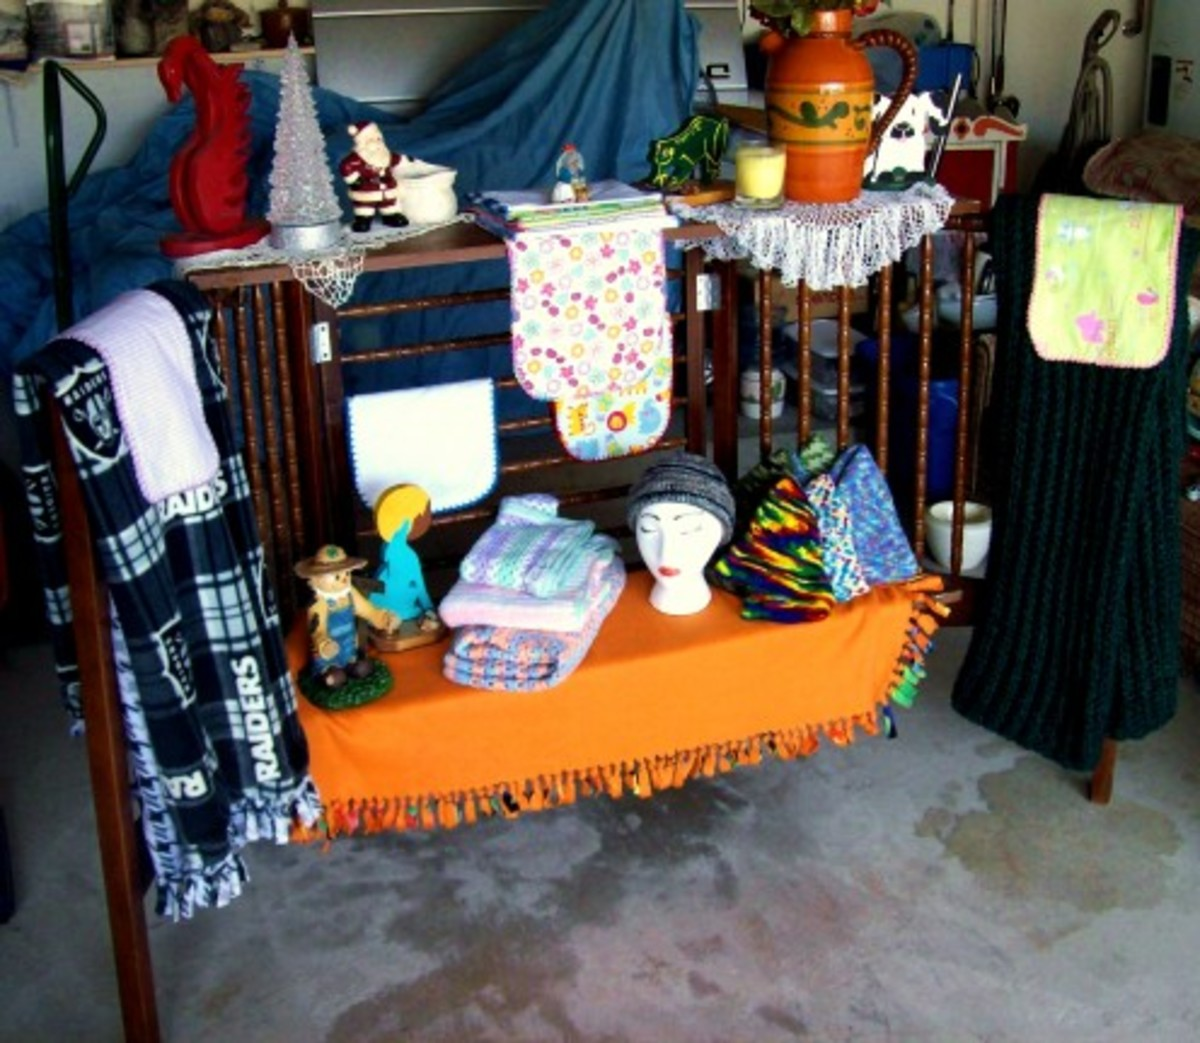 The final product and sample display for a craft fair